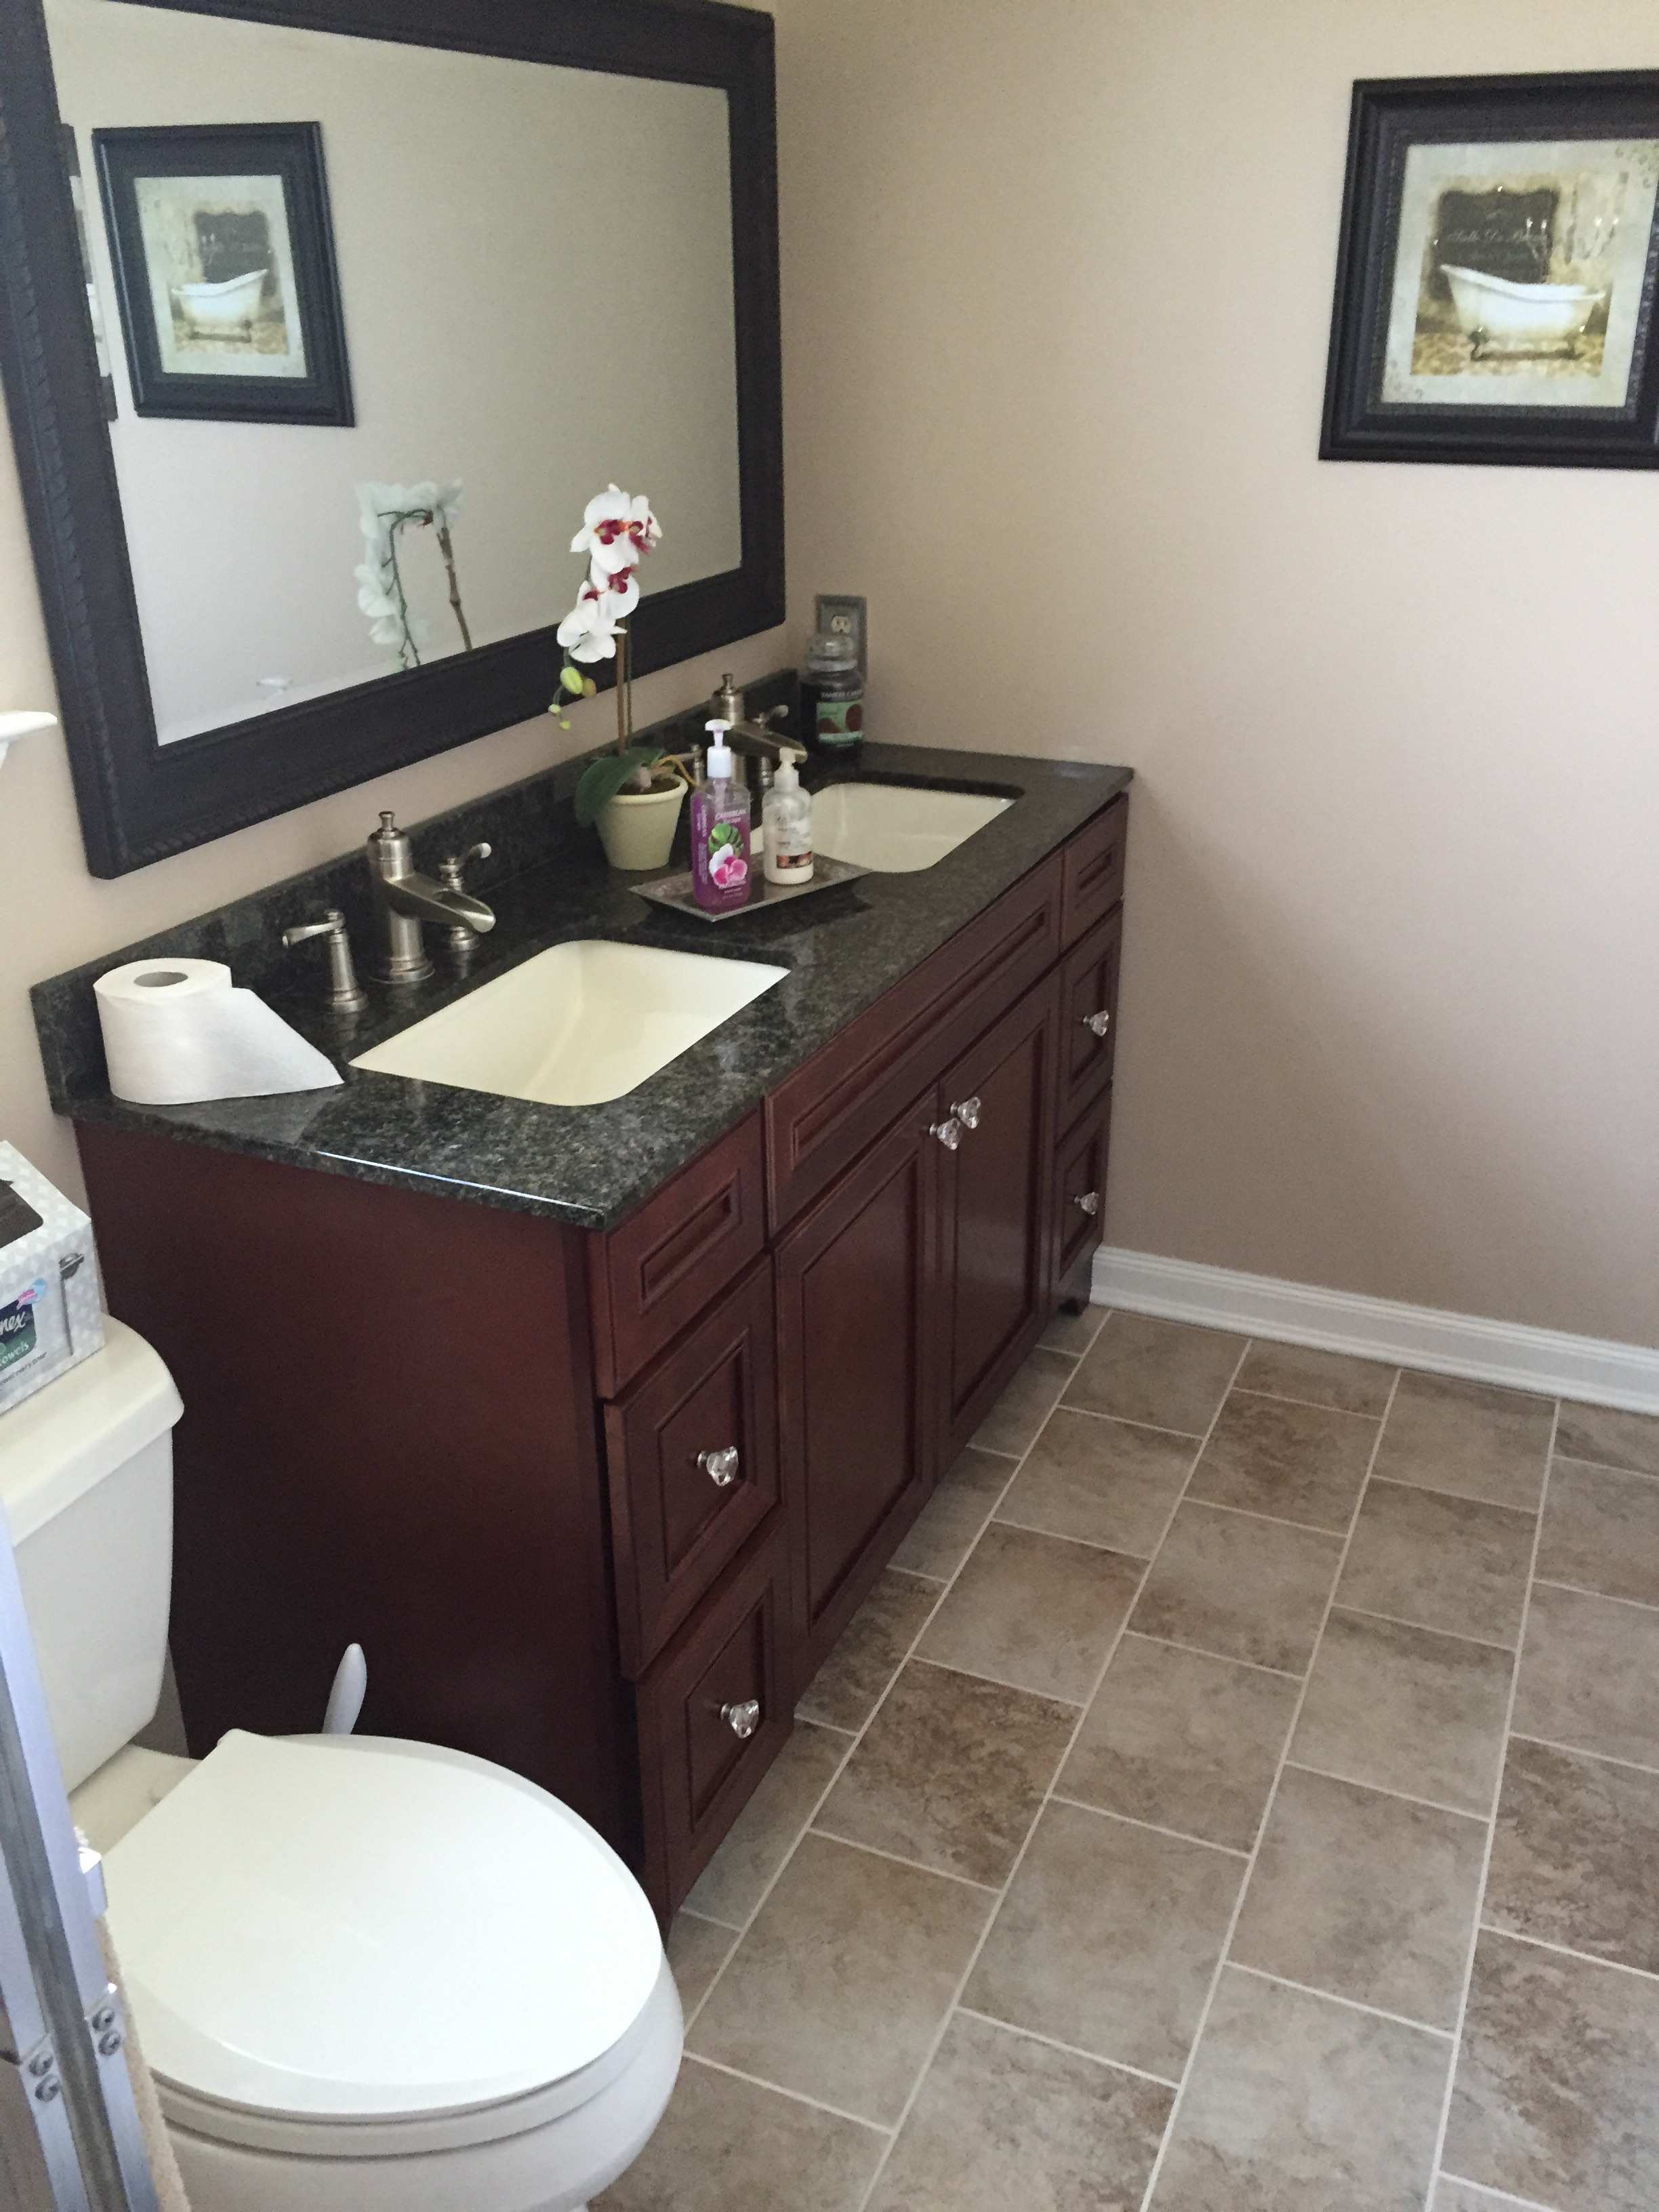 Bathroom Renovation In Sewell Located In South Jersey A Master Builders Remodeling A Master